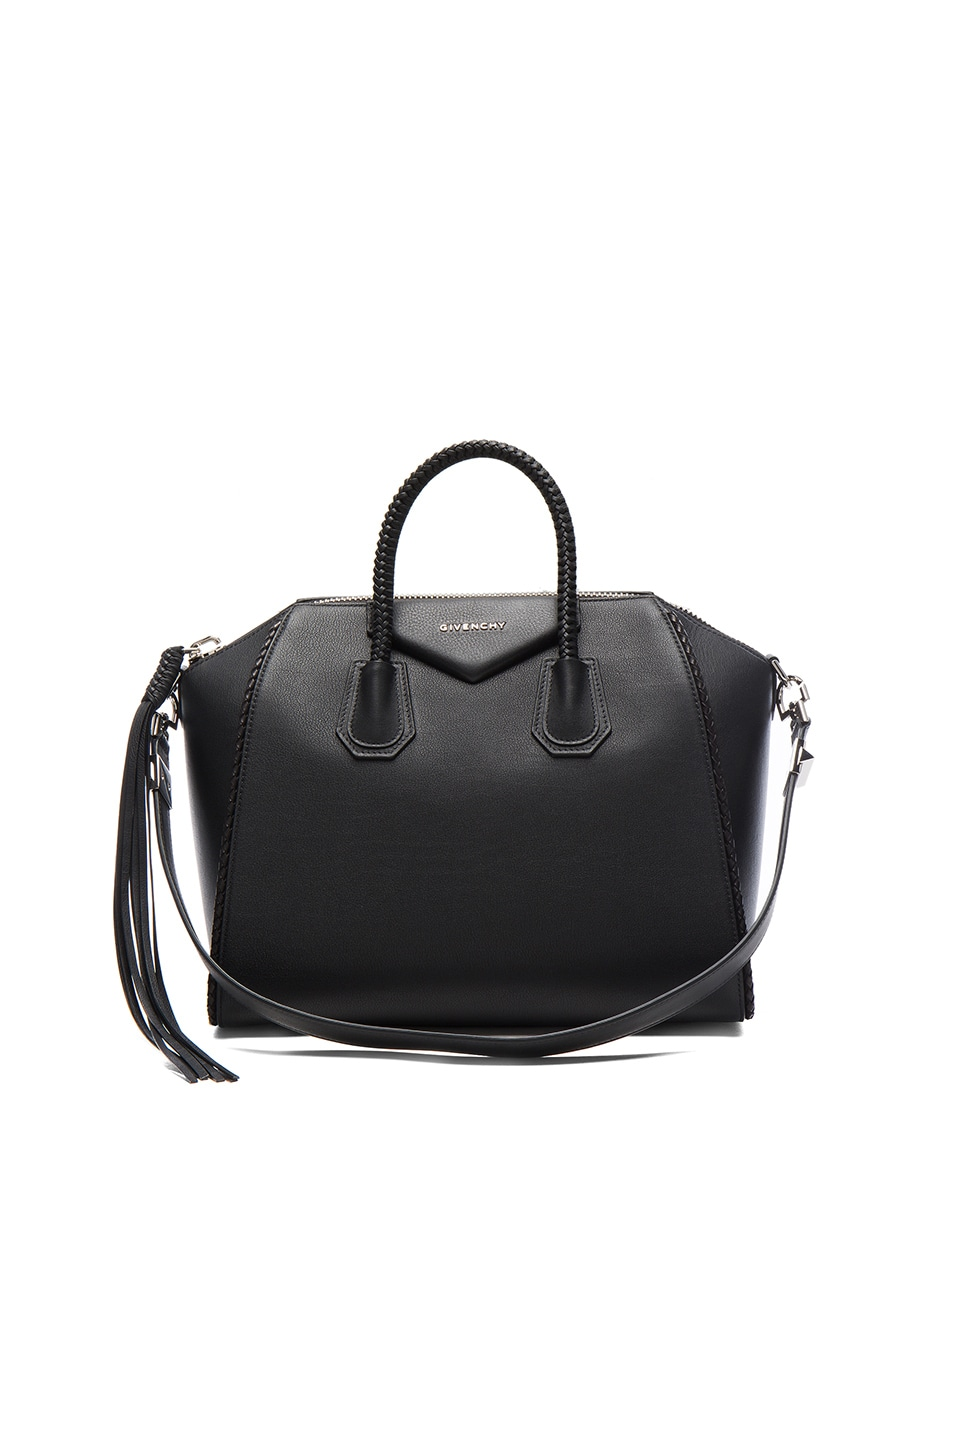 Image 1 of Givenchy Medium Braided Leather Antigona in Black